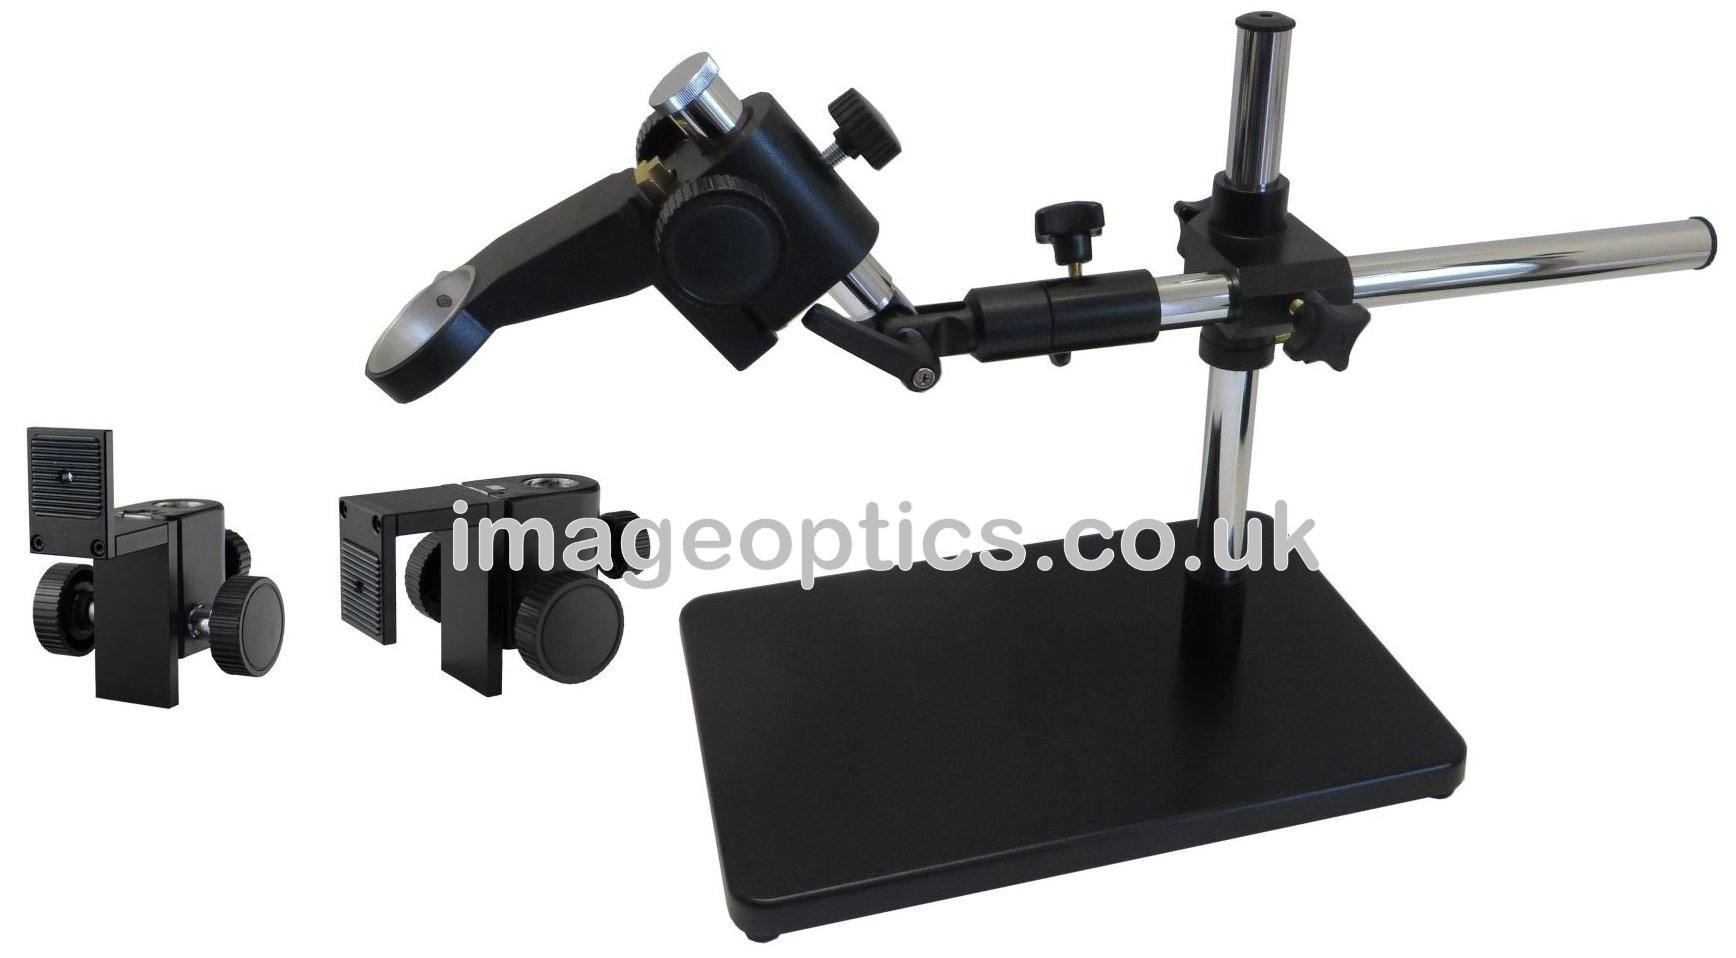 Microscope Stands Lenses Cameras And Microscopes